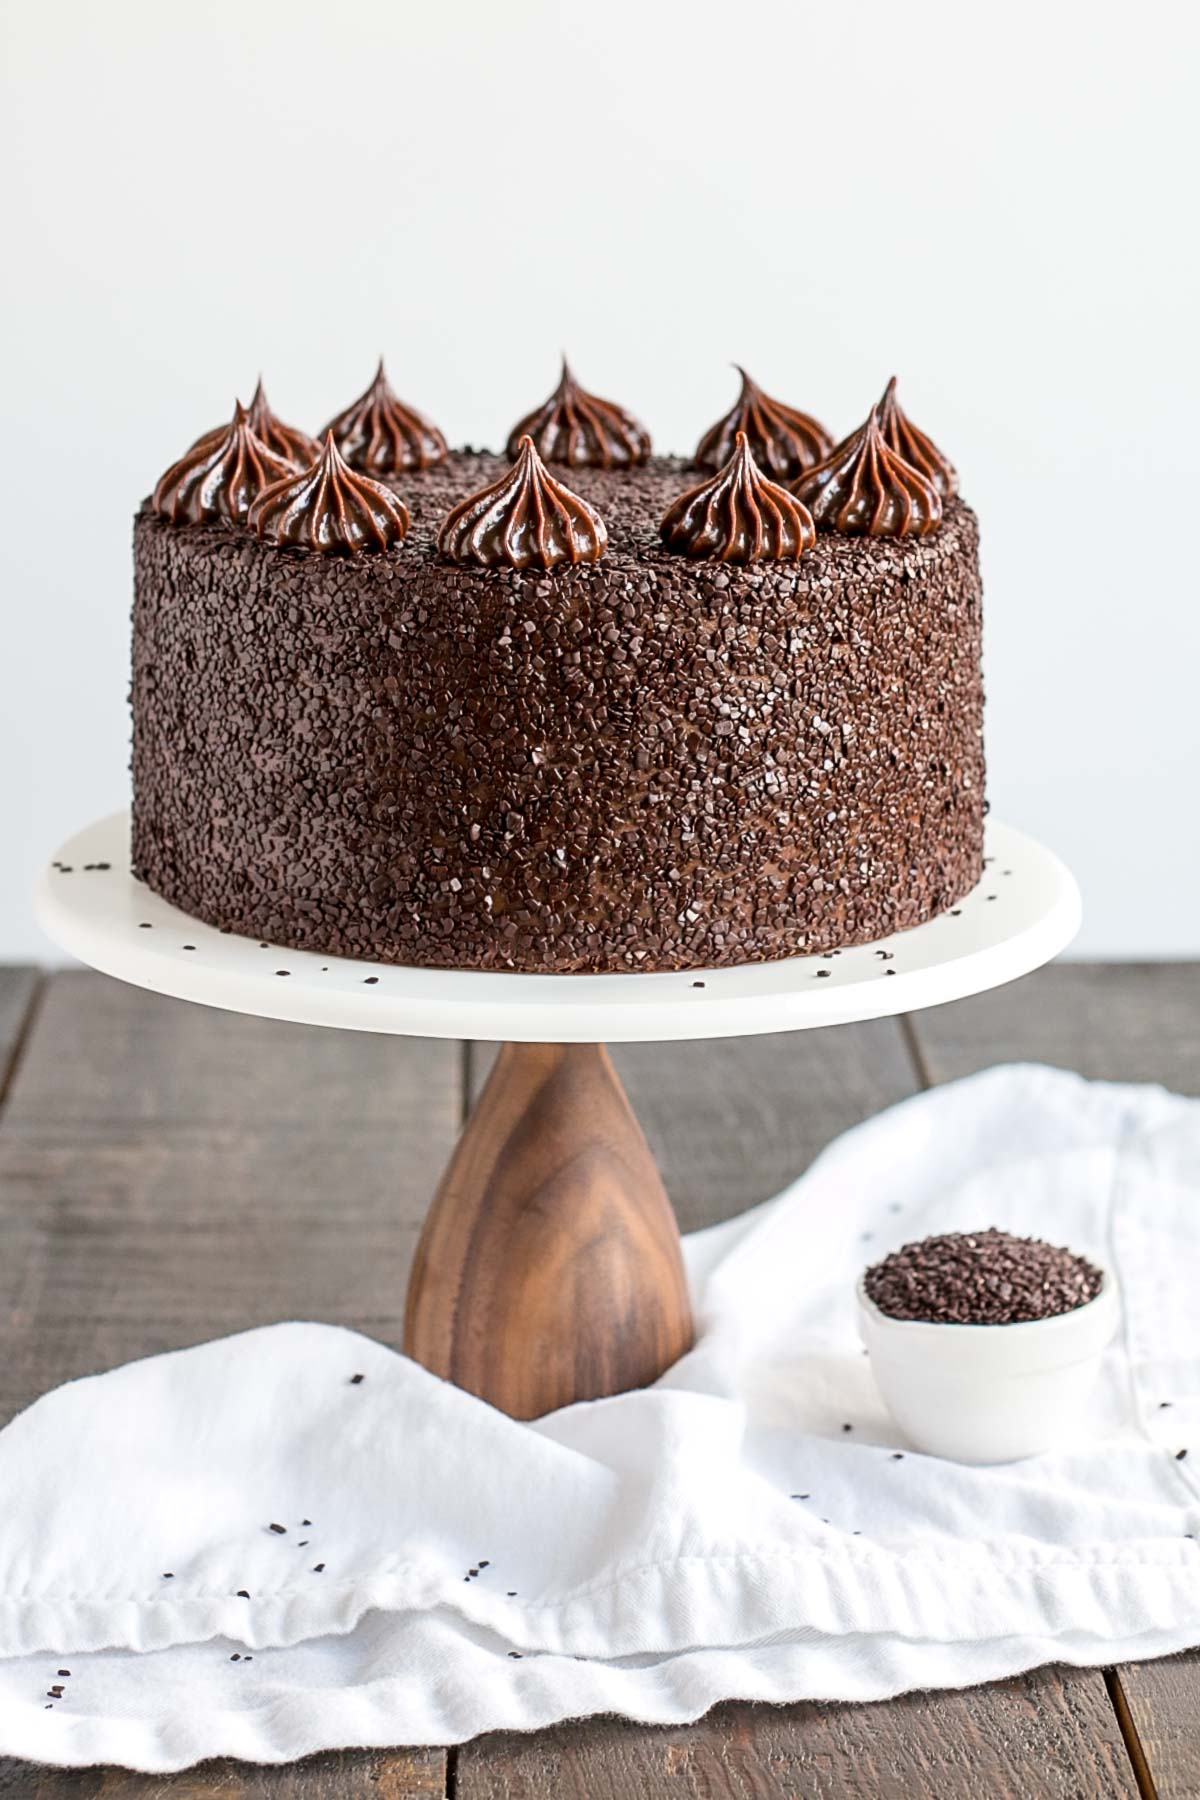 A chocolate cake sitting on top of a table